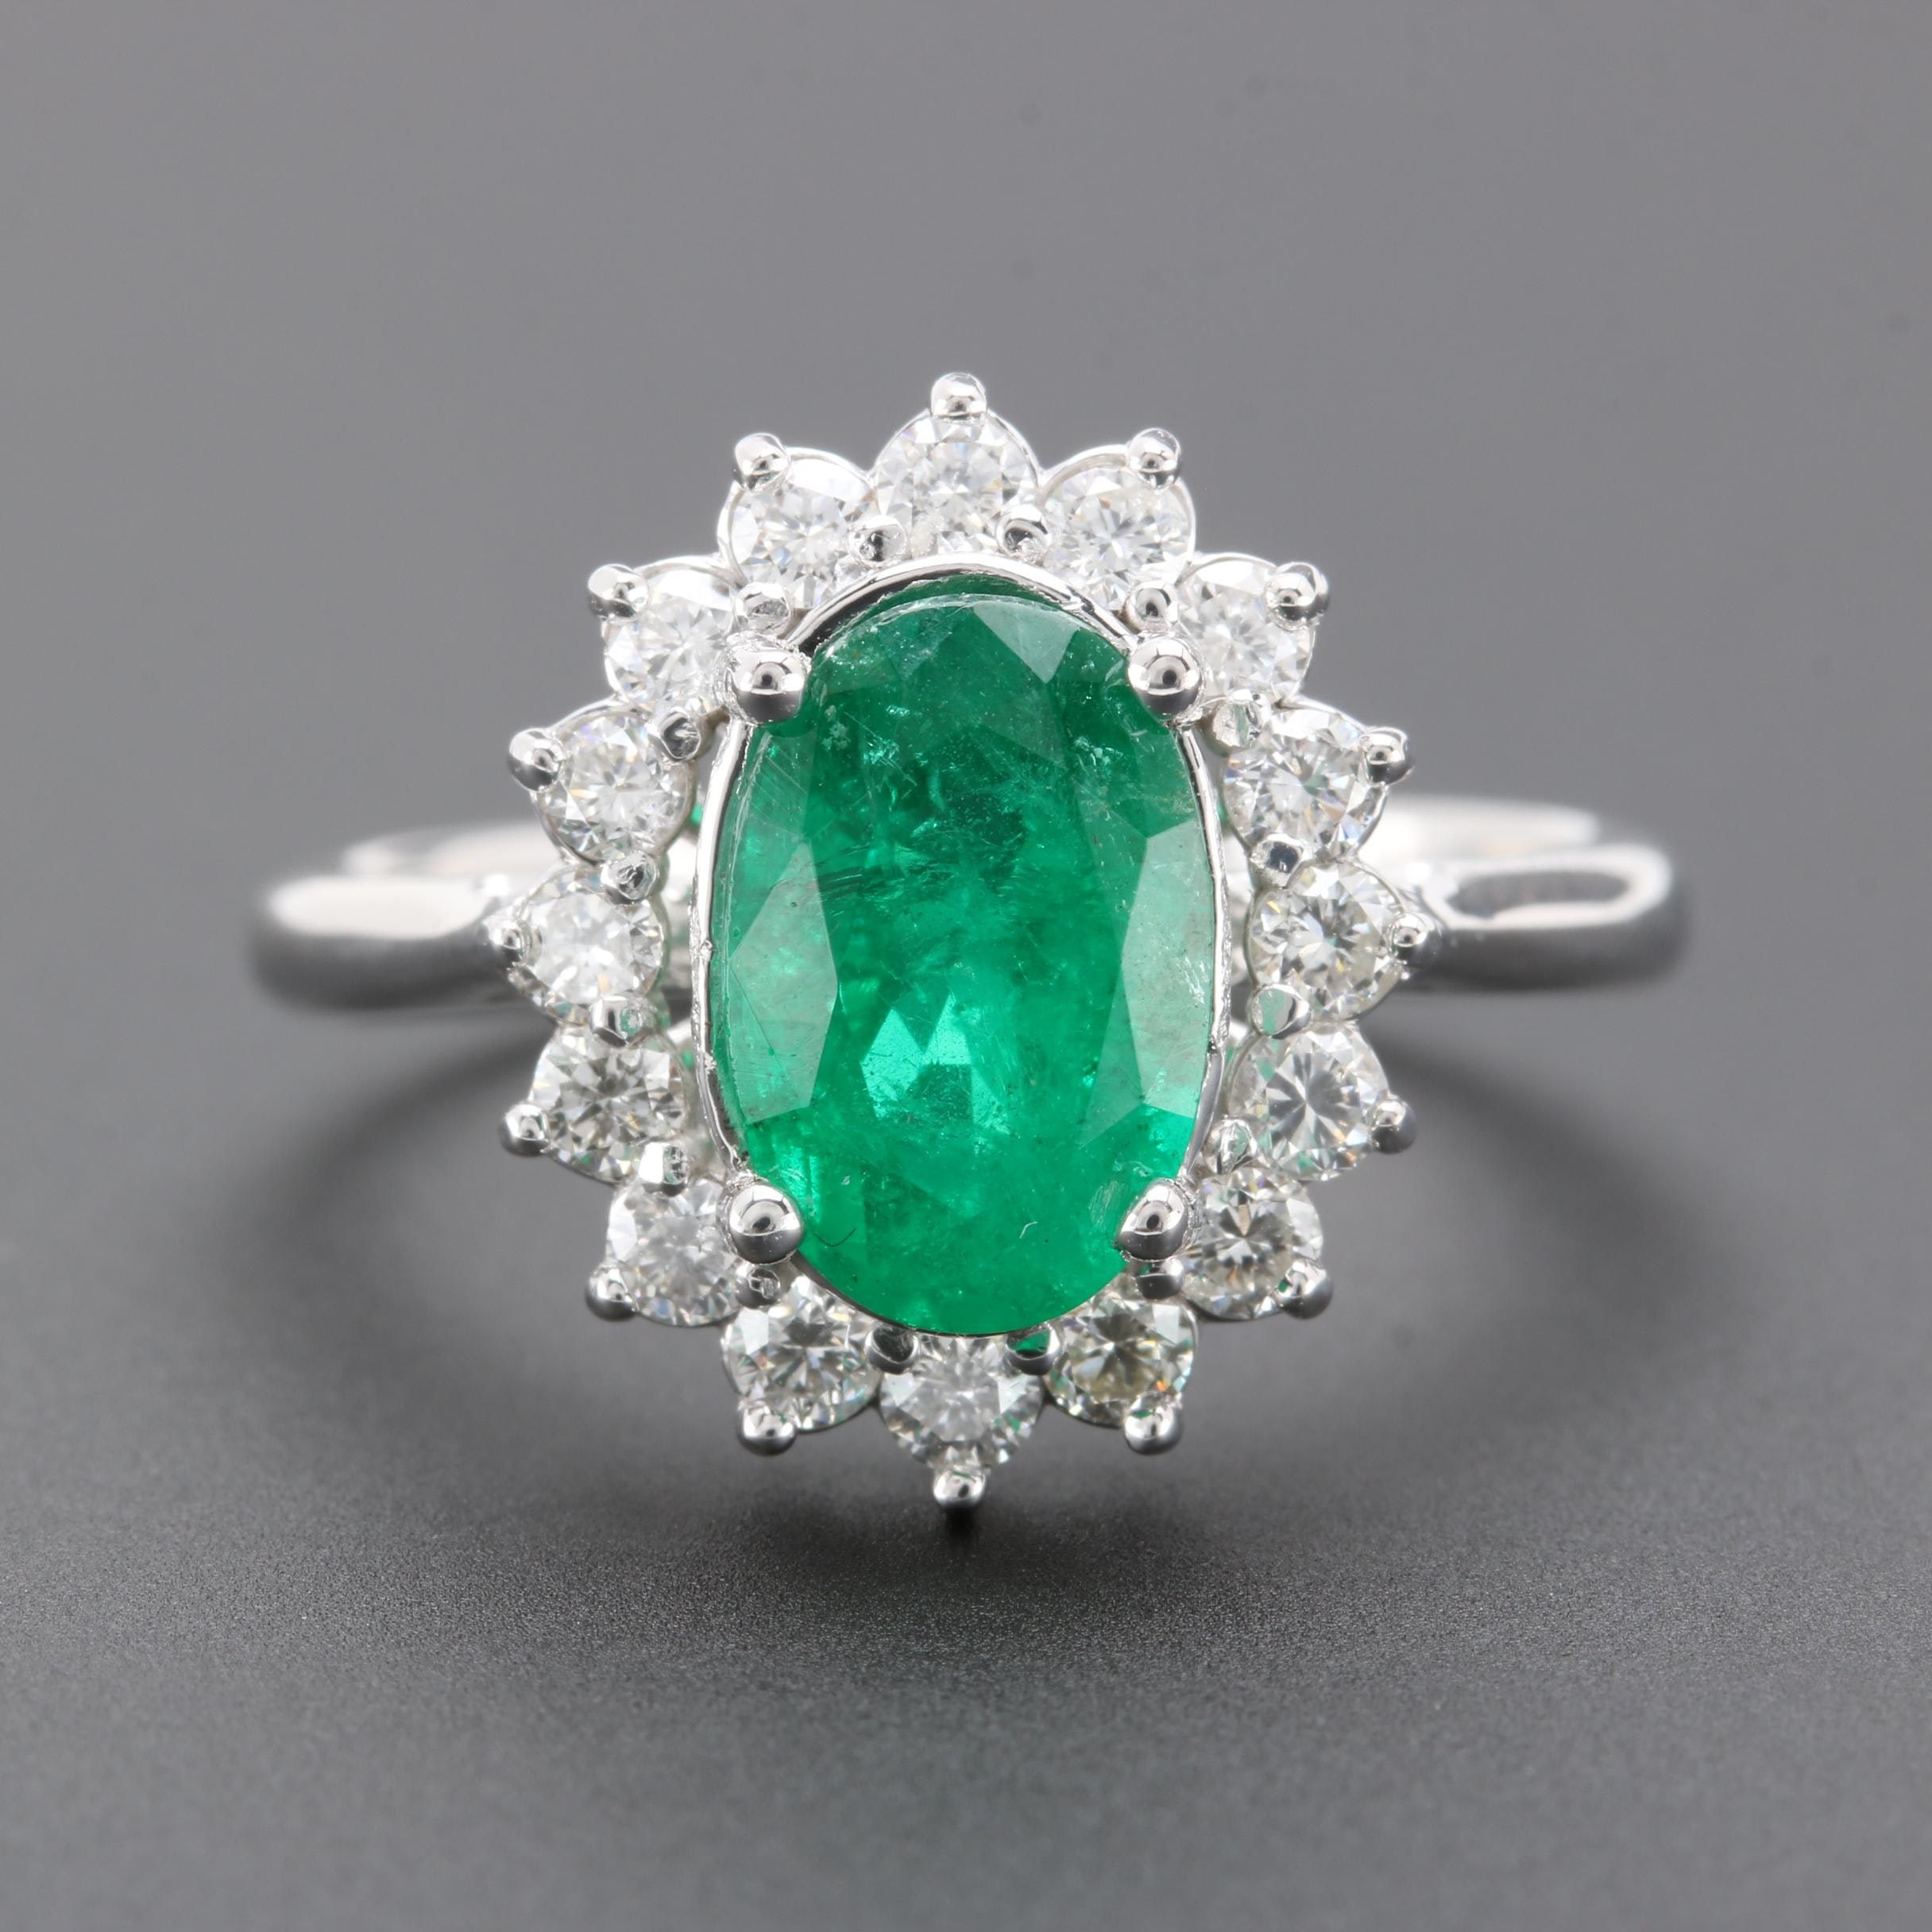 14K White Gold 1.74 CT Emerald and Diamond Ring